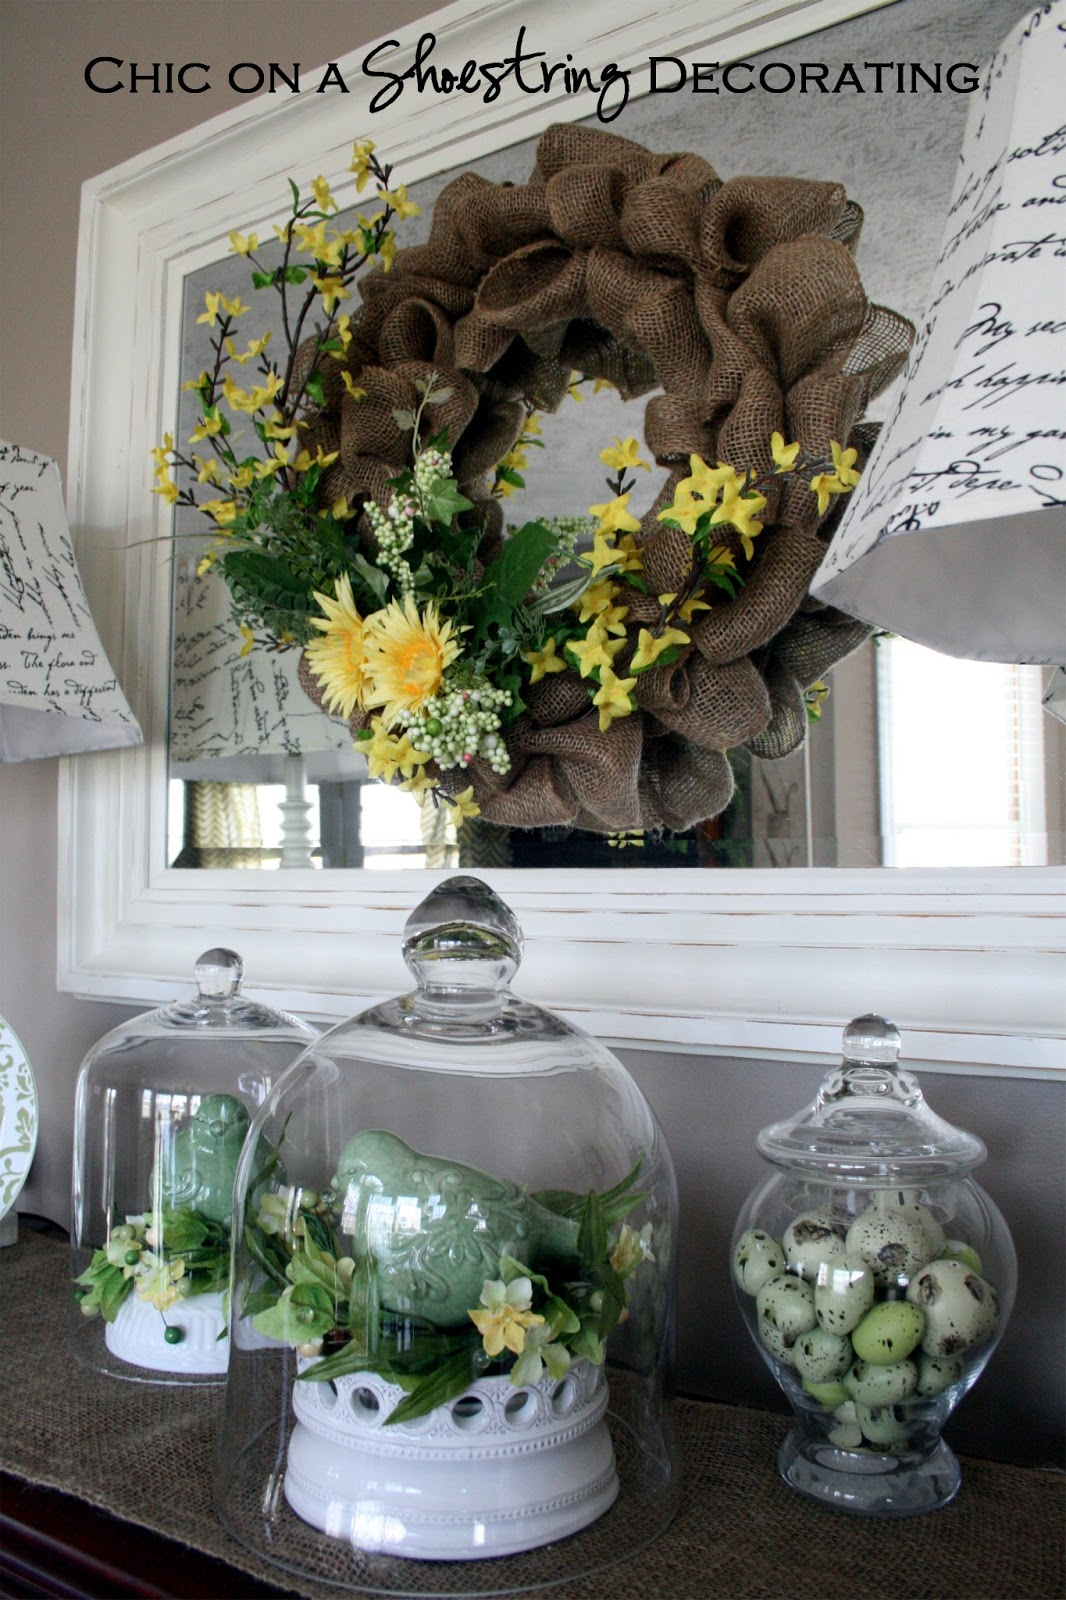 Diy Spring Decor: Chic On A Shoestring Decorating: Cheap, DIY Spring Wreath Tutorial